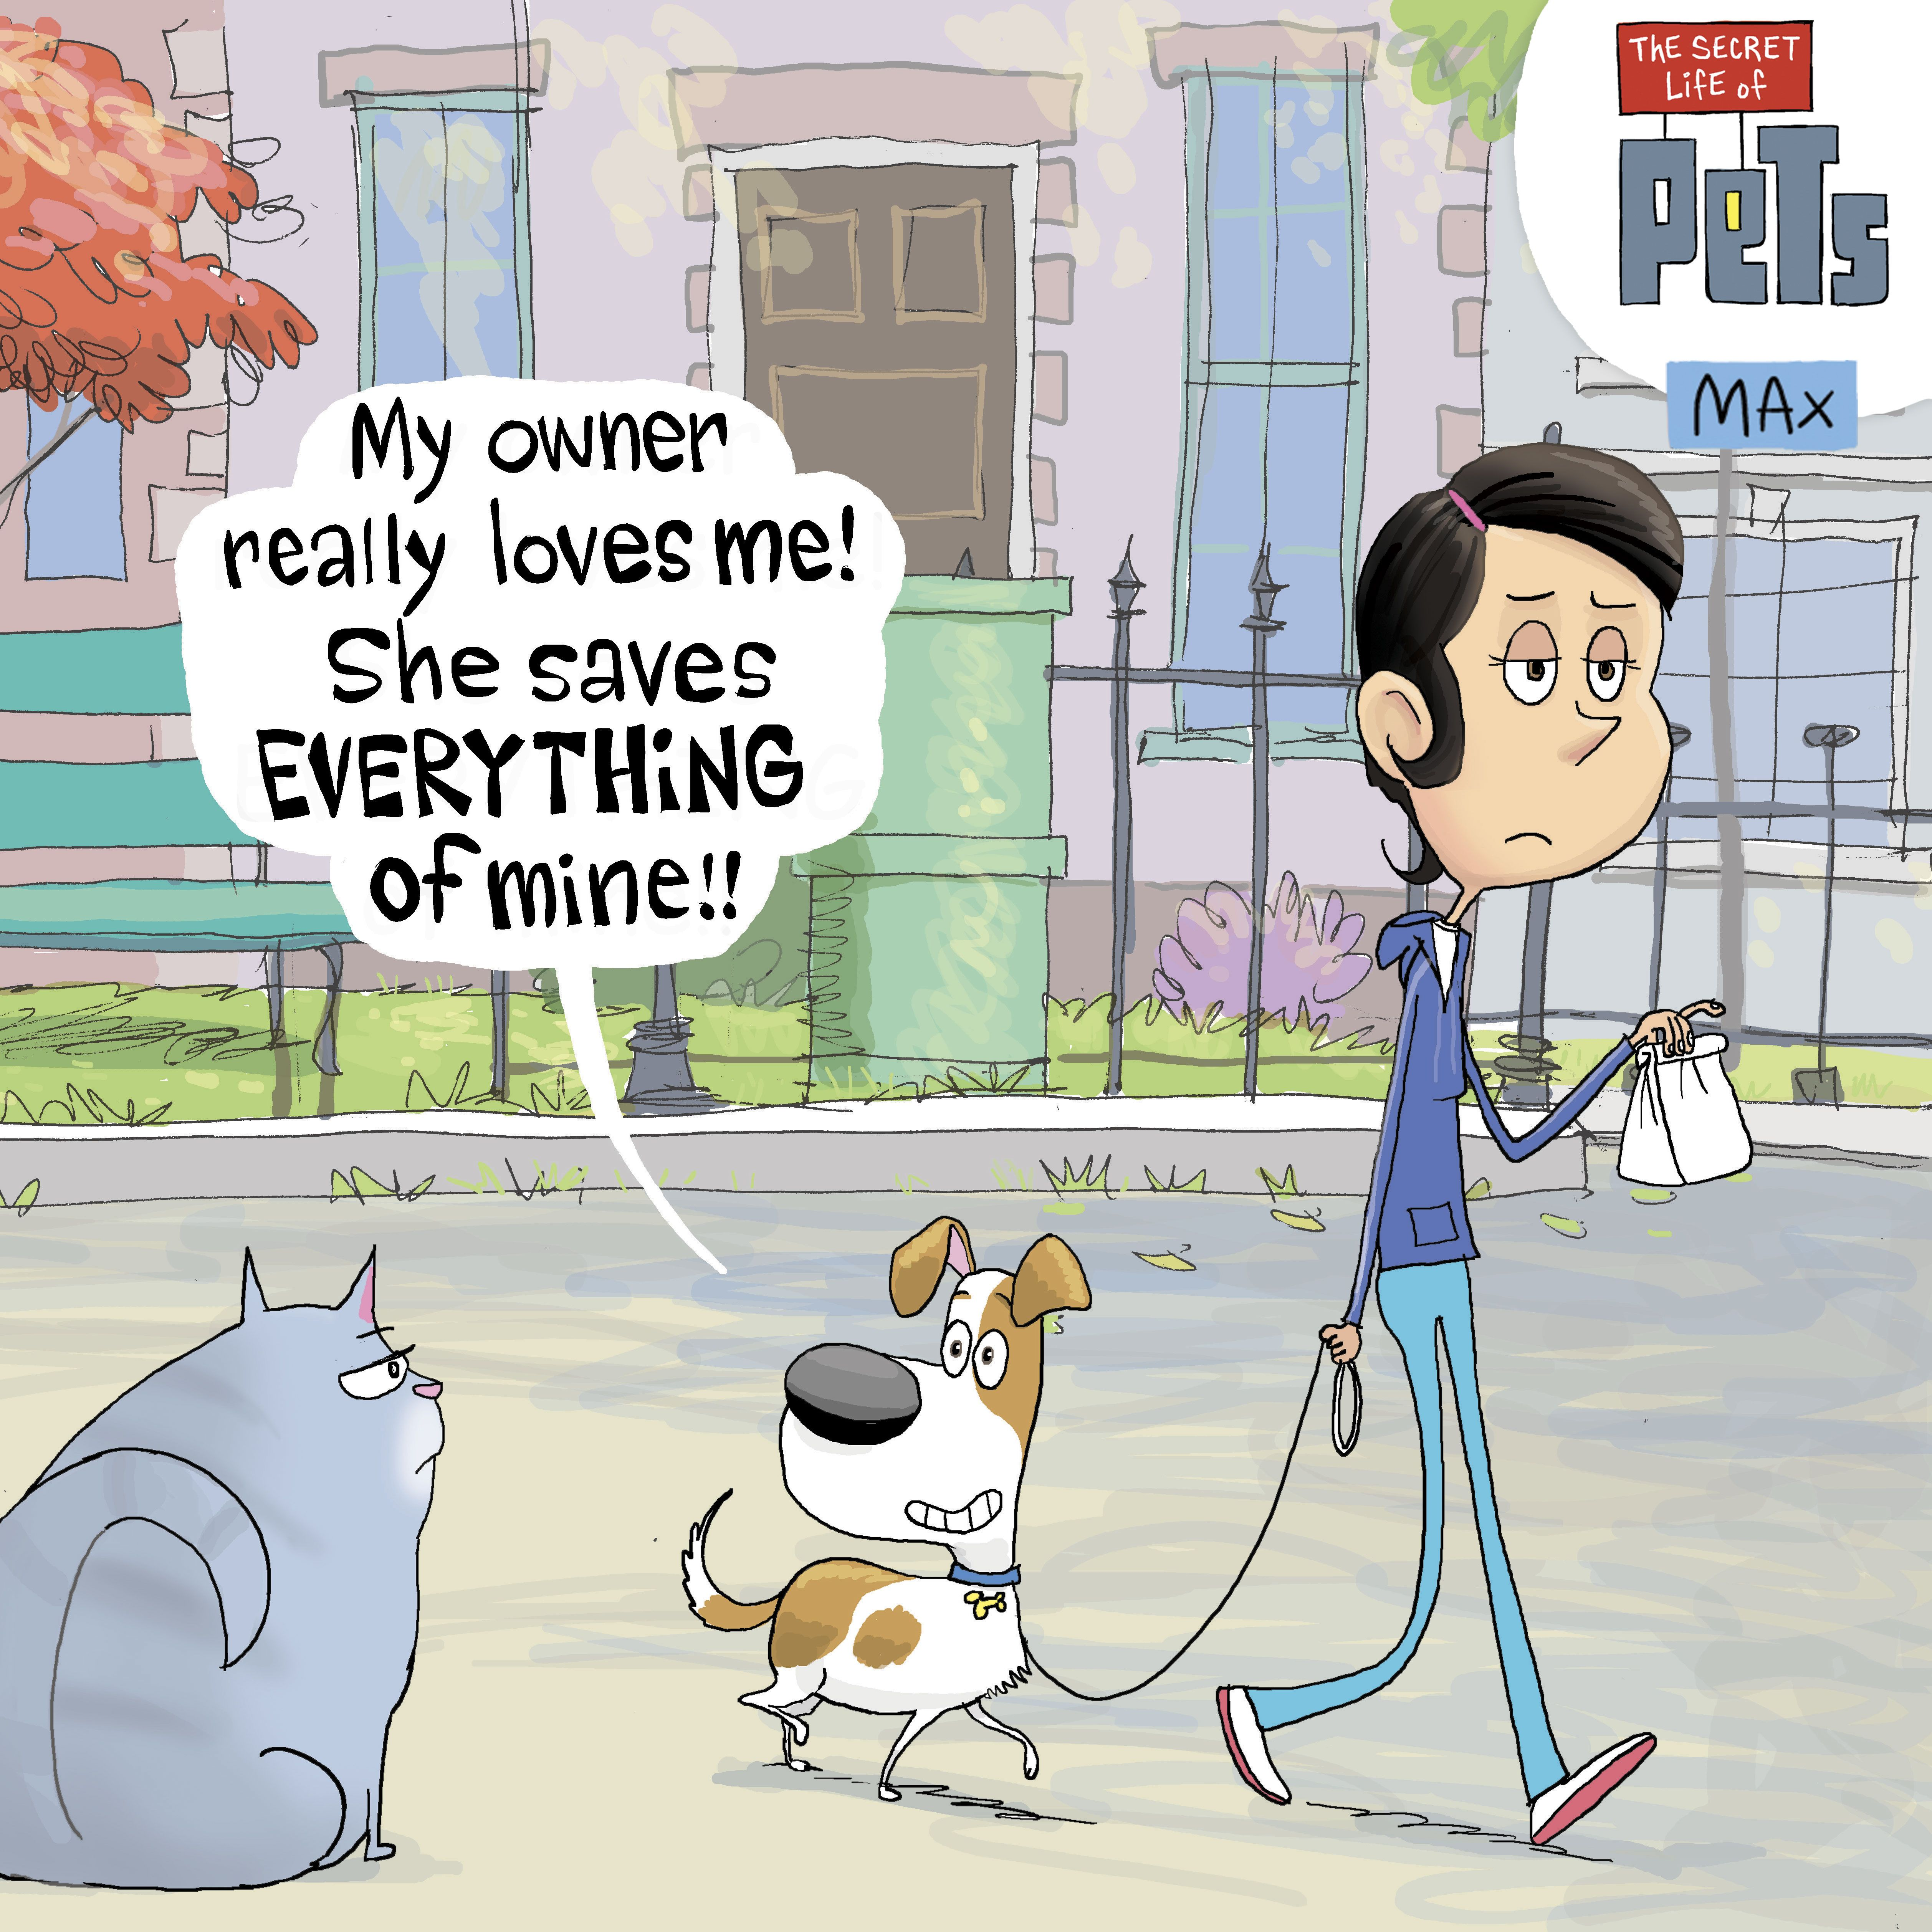 Check out this funny comic of a loyal pet owner doing her